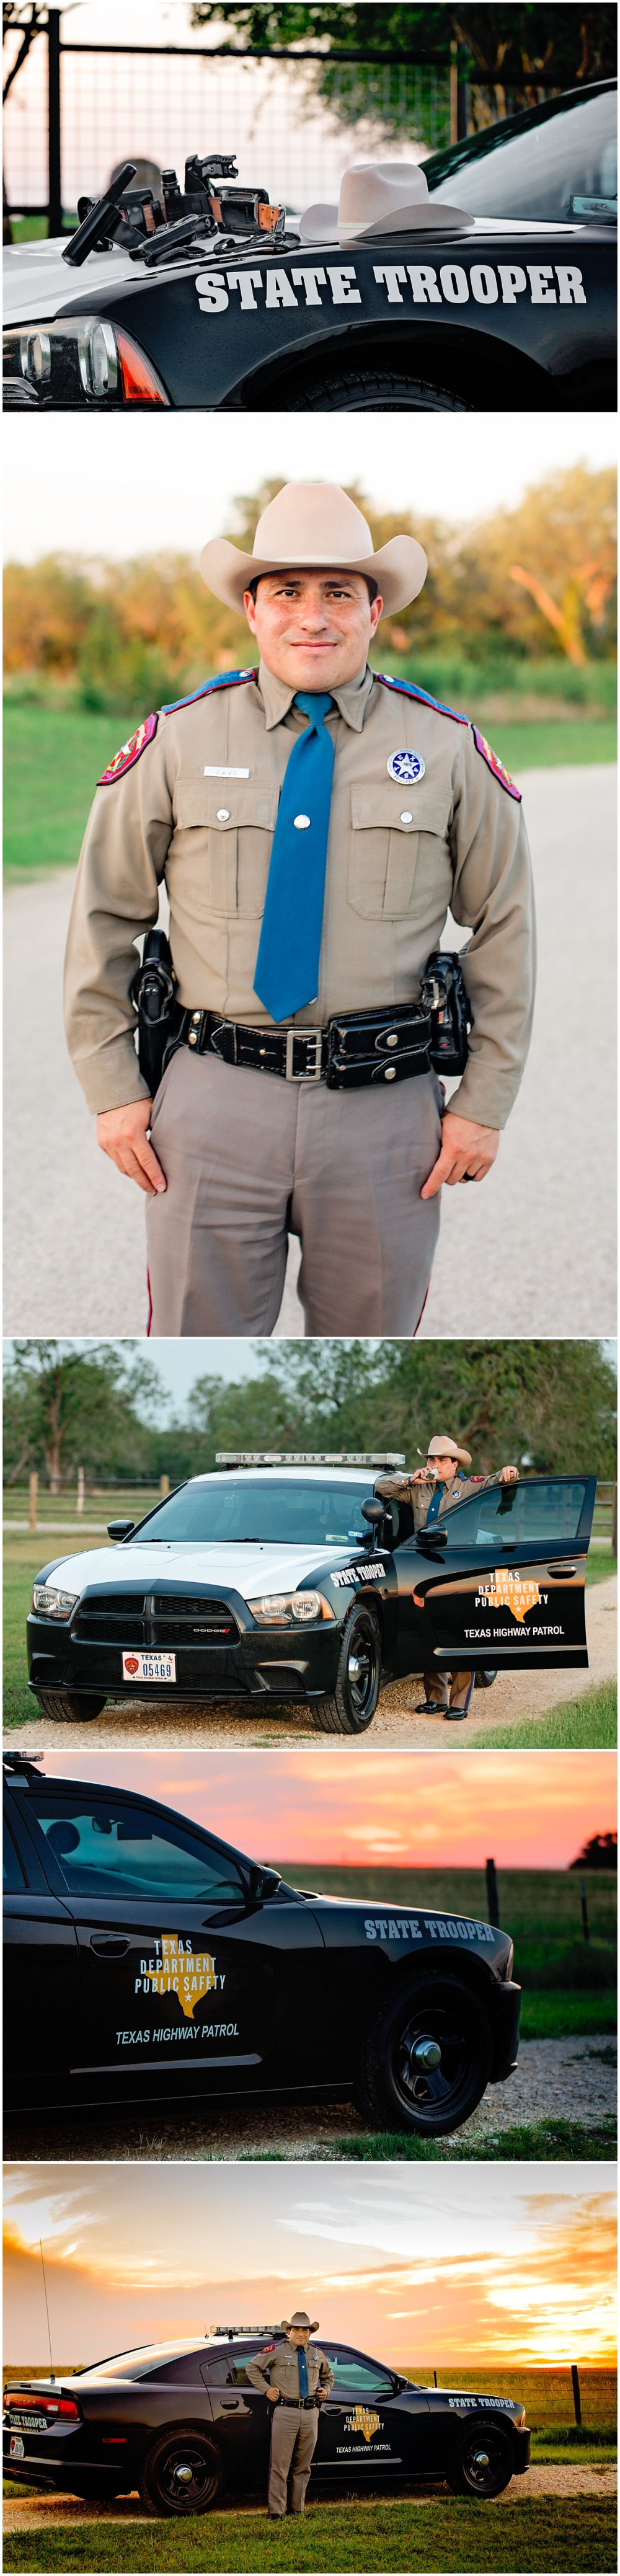 Portraits-State-Trooper-Photos-San-Antonio-Hill-Country-Texas-Carly-Barton-Photography_0009.jpg